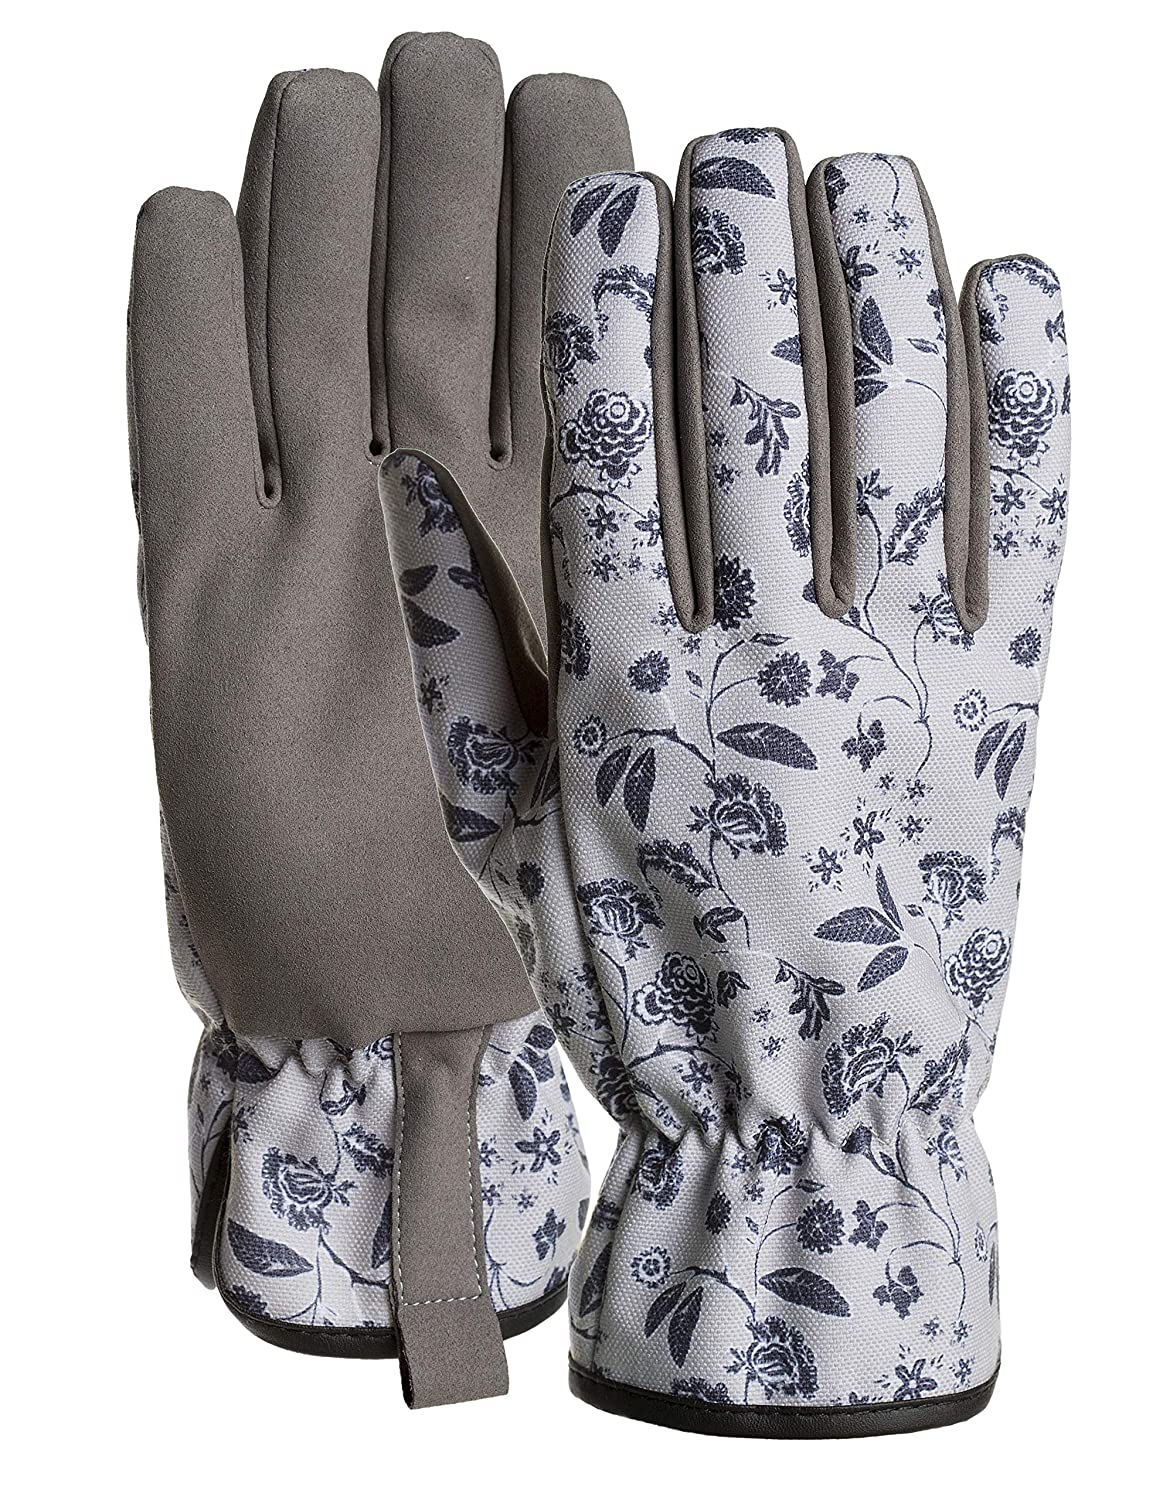 KAYGO Women Garden Work Gloves, KG128SG, for Every Beautiful Women and Her Lovely Garden (Large)